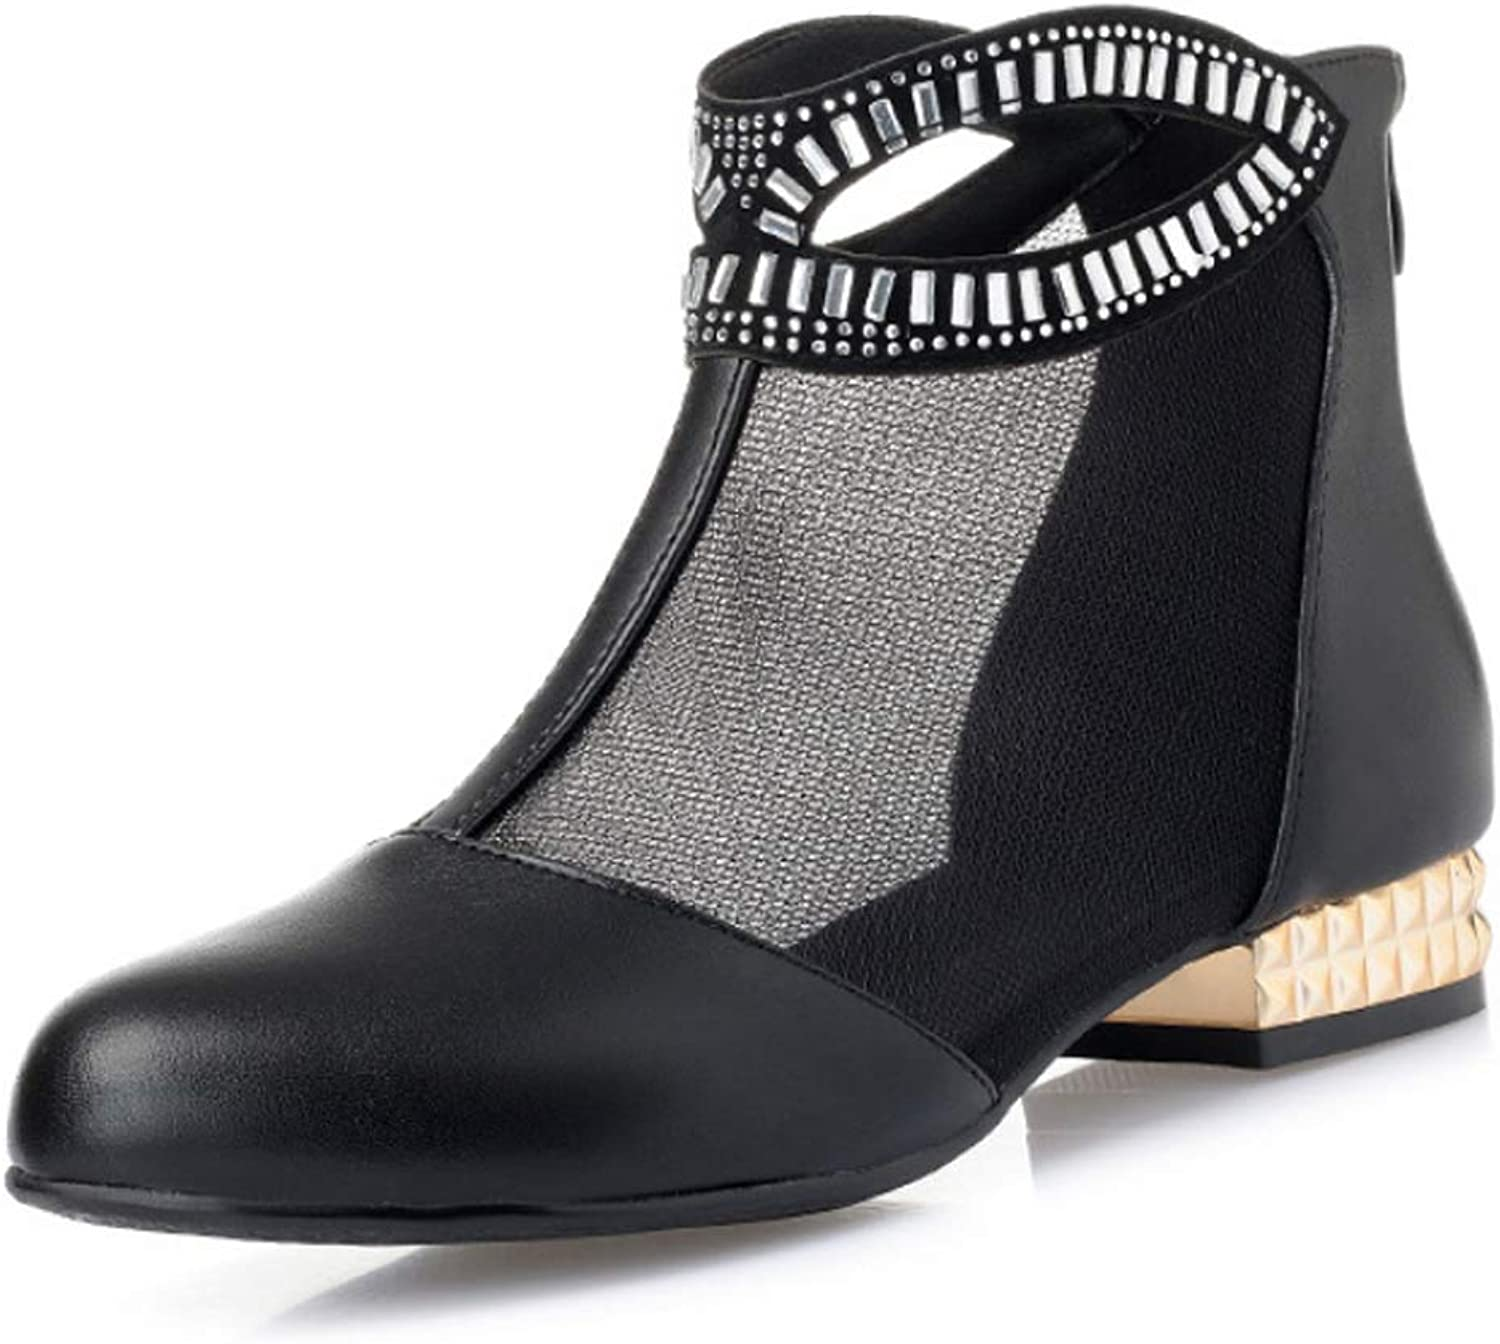 Women's Breathable Chelsea boots Rhinestone Mesh Leather shoes Casual Sandals Ankle Boots